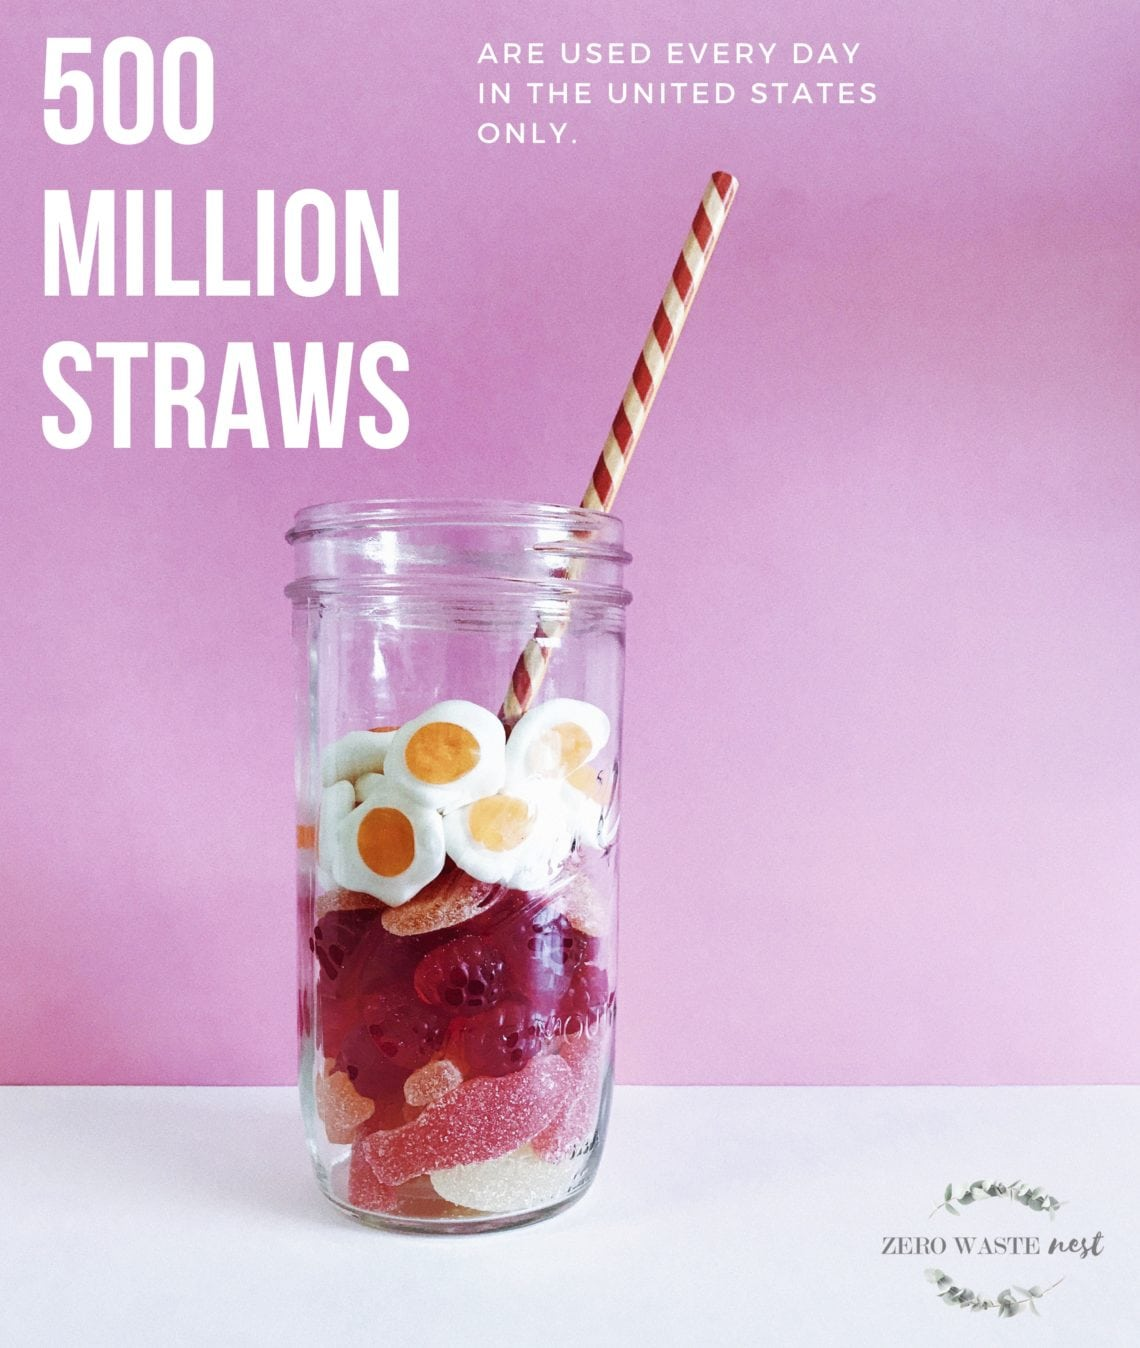 500 million straws are used every day in the united states only.